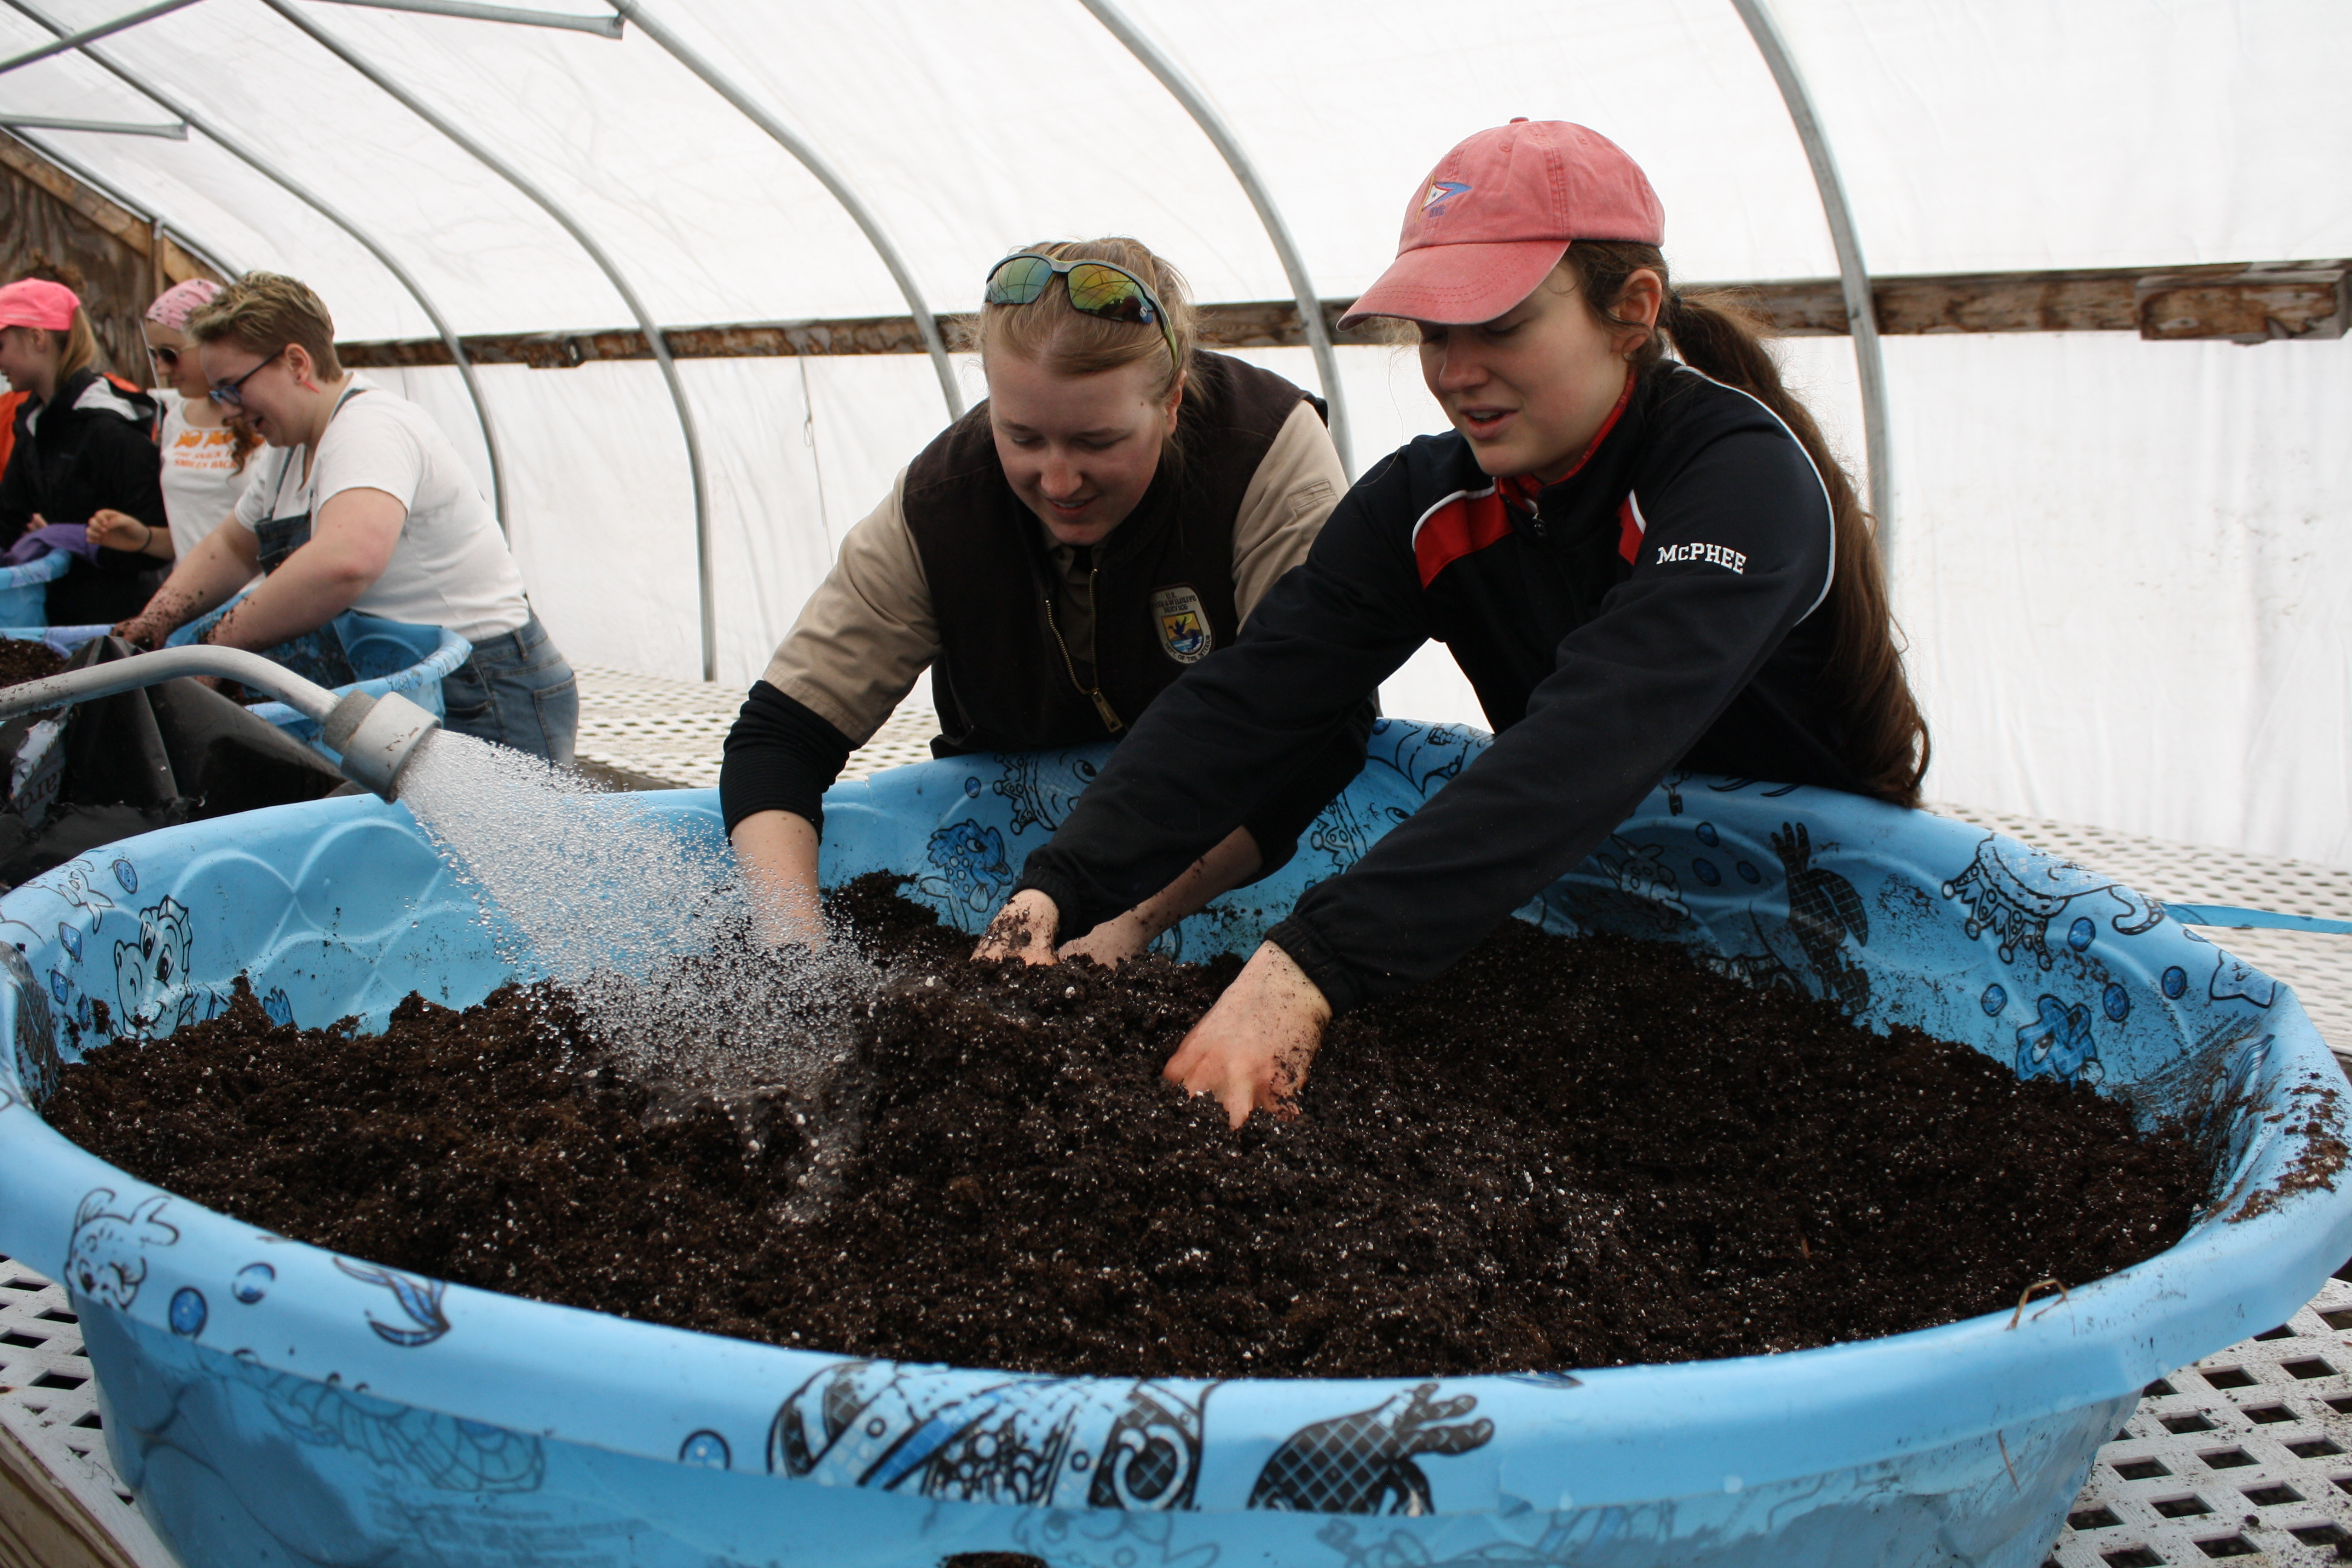 Megan Zopfi, biological sciences technician at U.S. Fish and Wildlife Service, gets her hands dirty as she prepares soil for plants with a Coastal Studies for Girls team member.